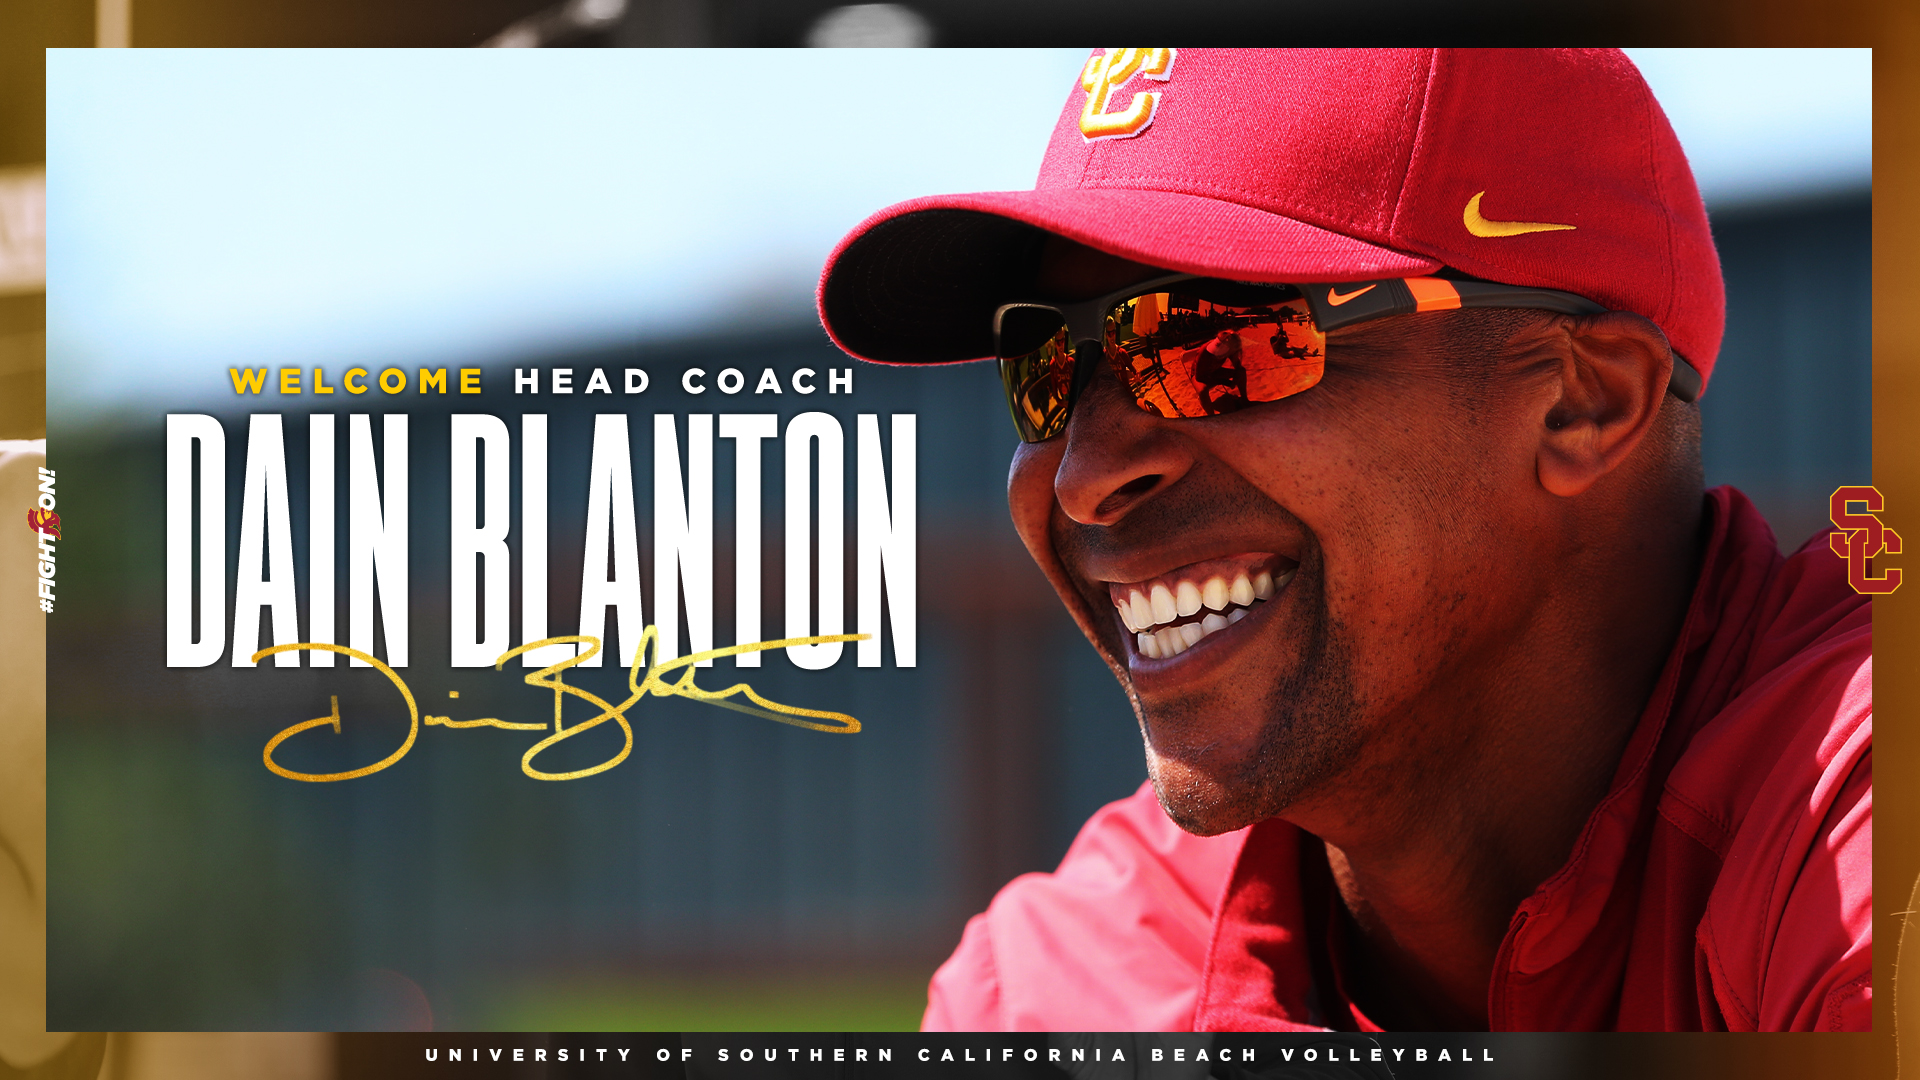 Dain Blanton head coach announcement graphic